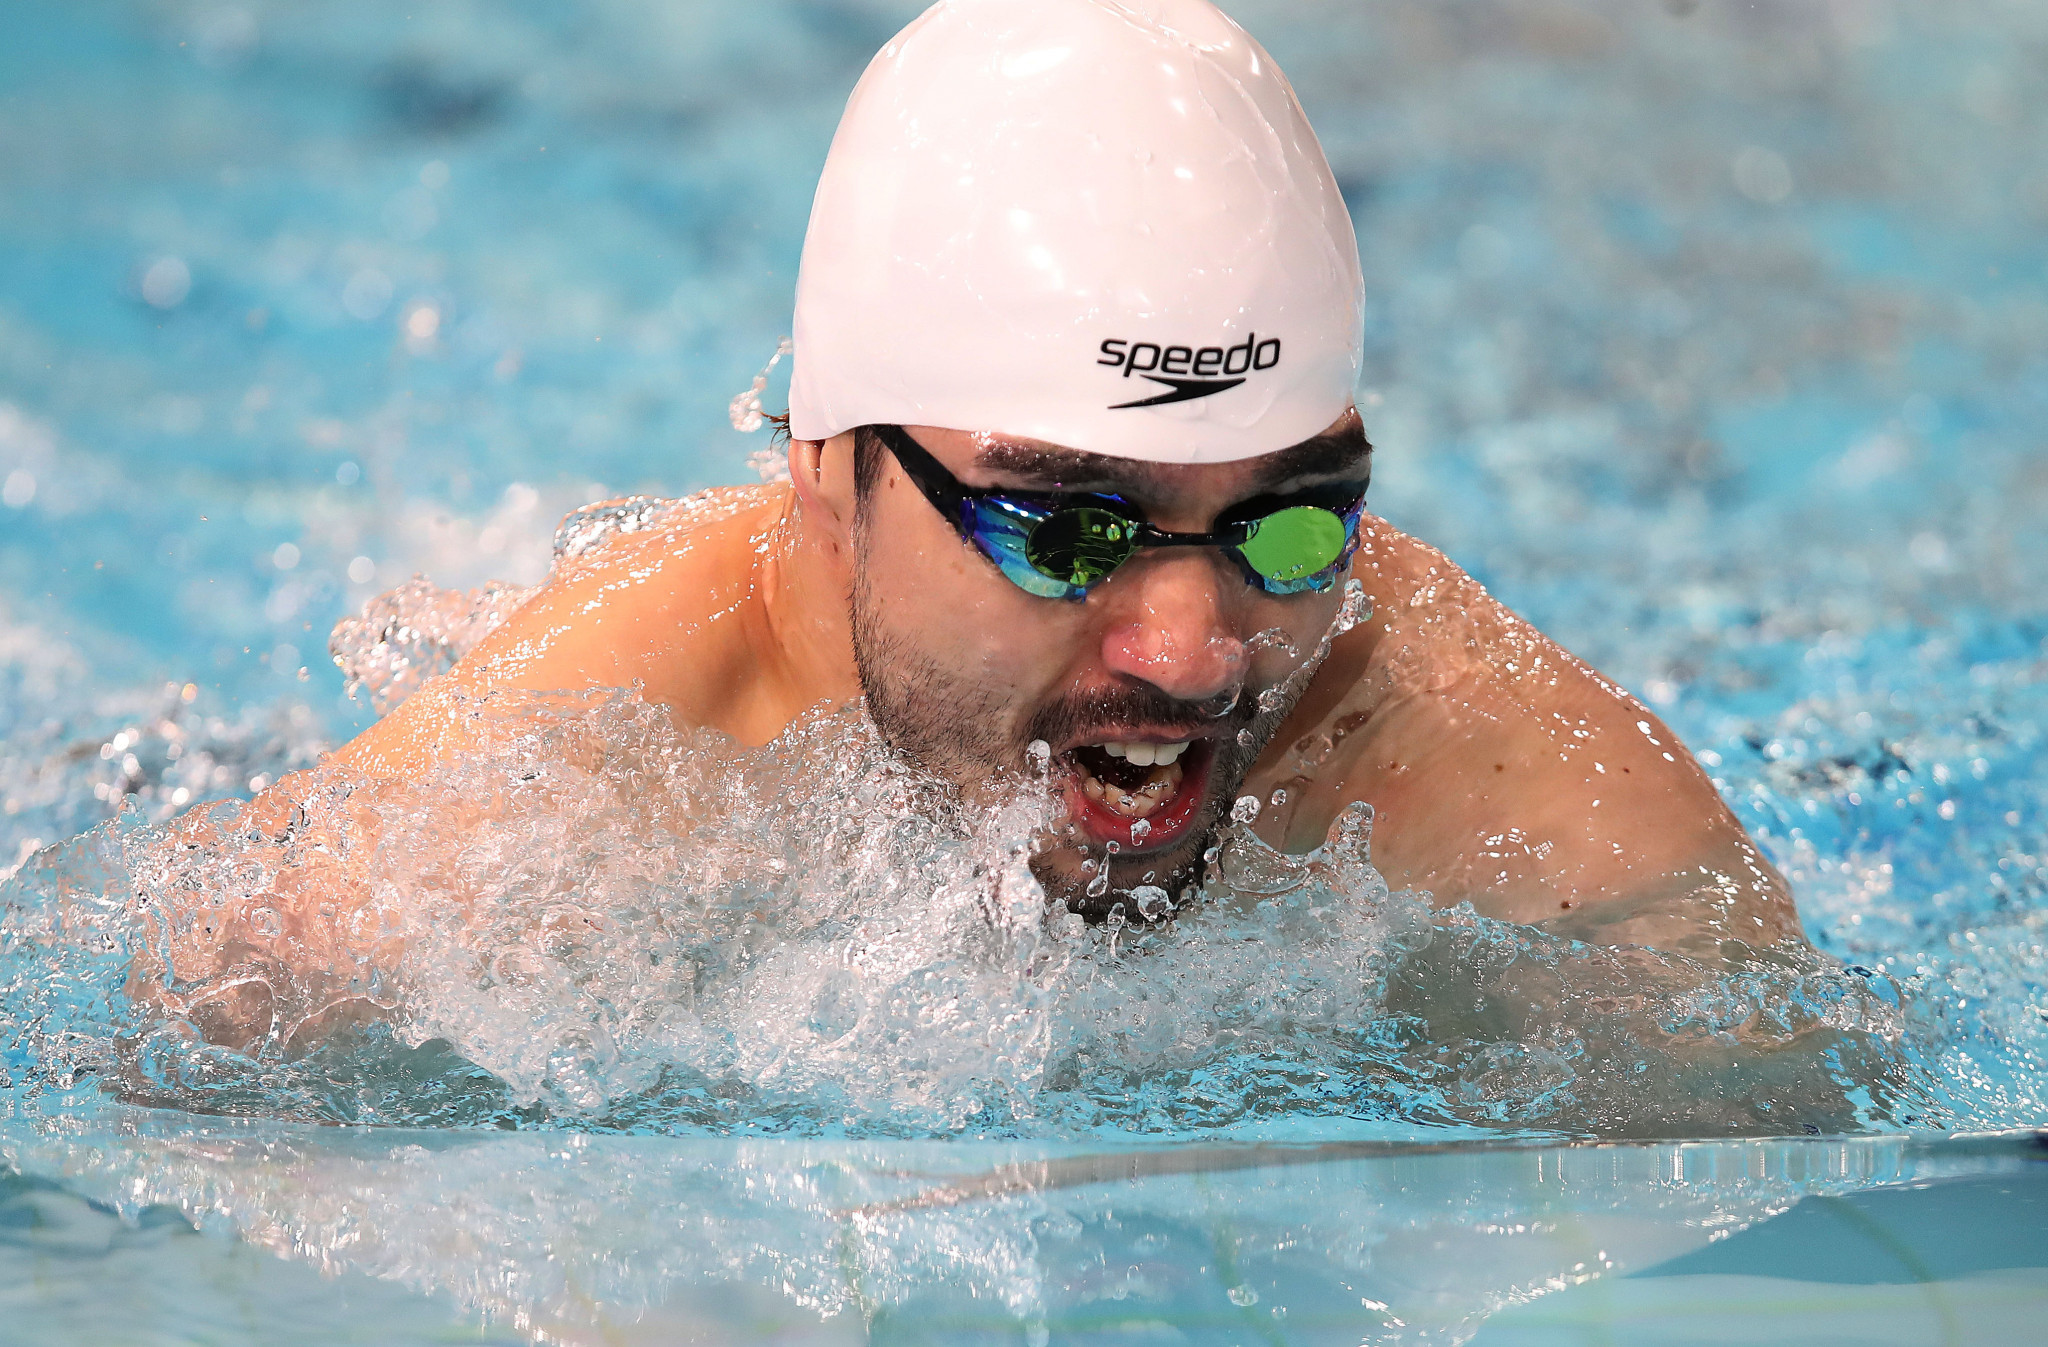 Japan's Takayuki Suzuki will continue his preparations for Tokyo 2020 in the World Para Swimming World Series in Berlin ©Getty Images